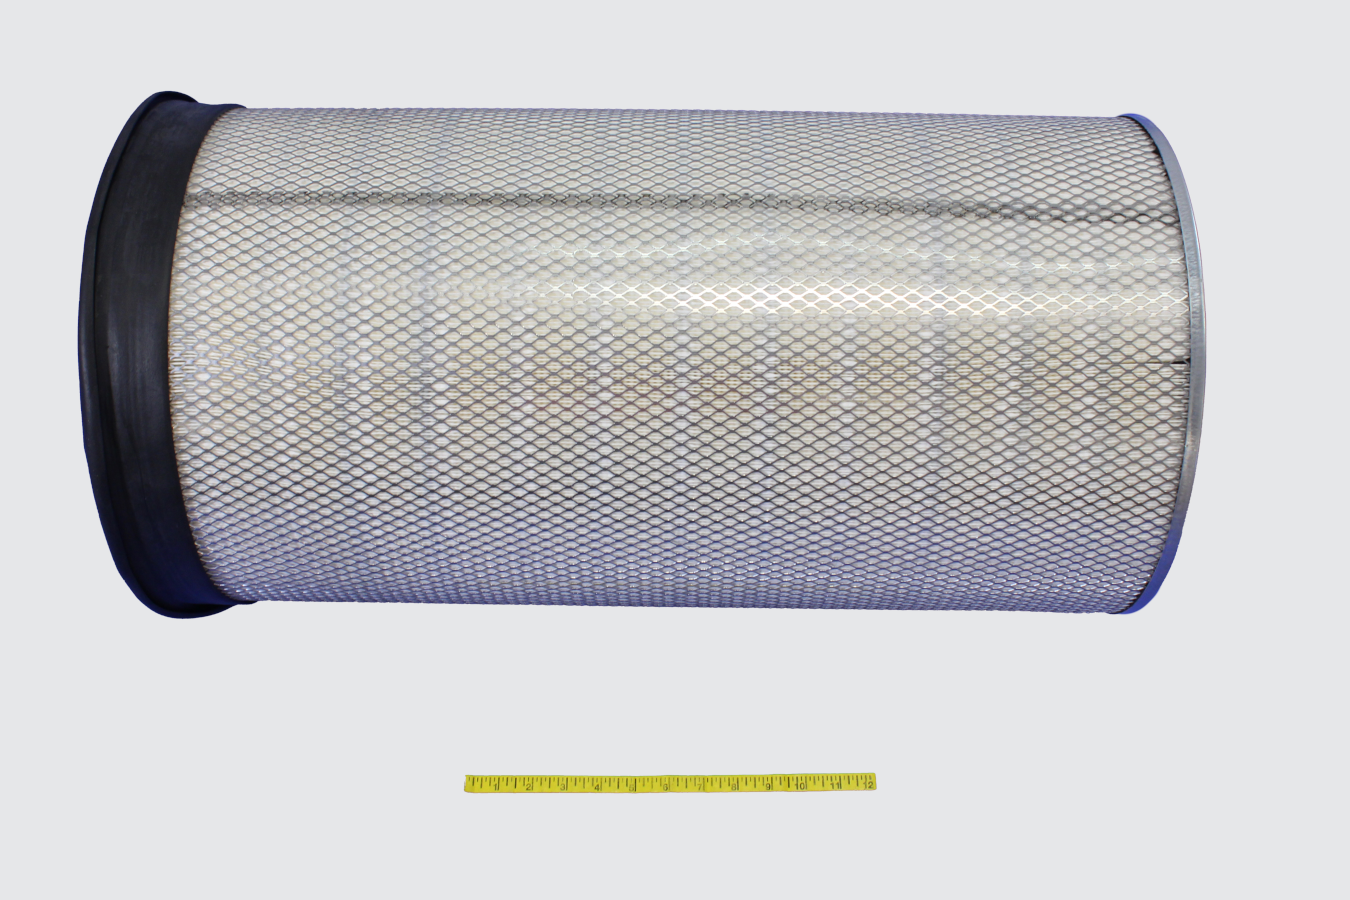 36864361 - ELEMENT, PRIMARY OUTER